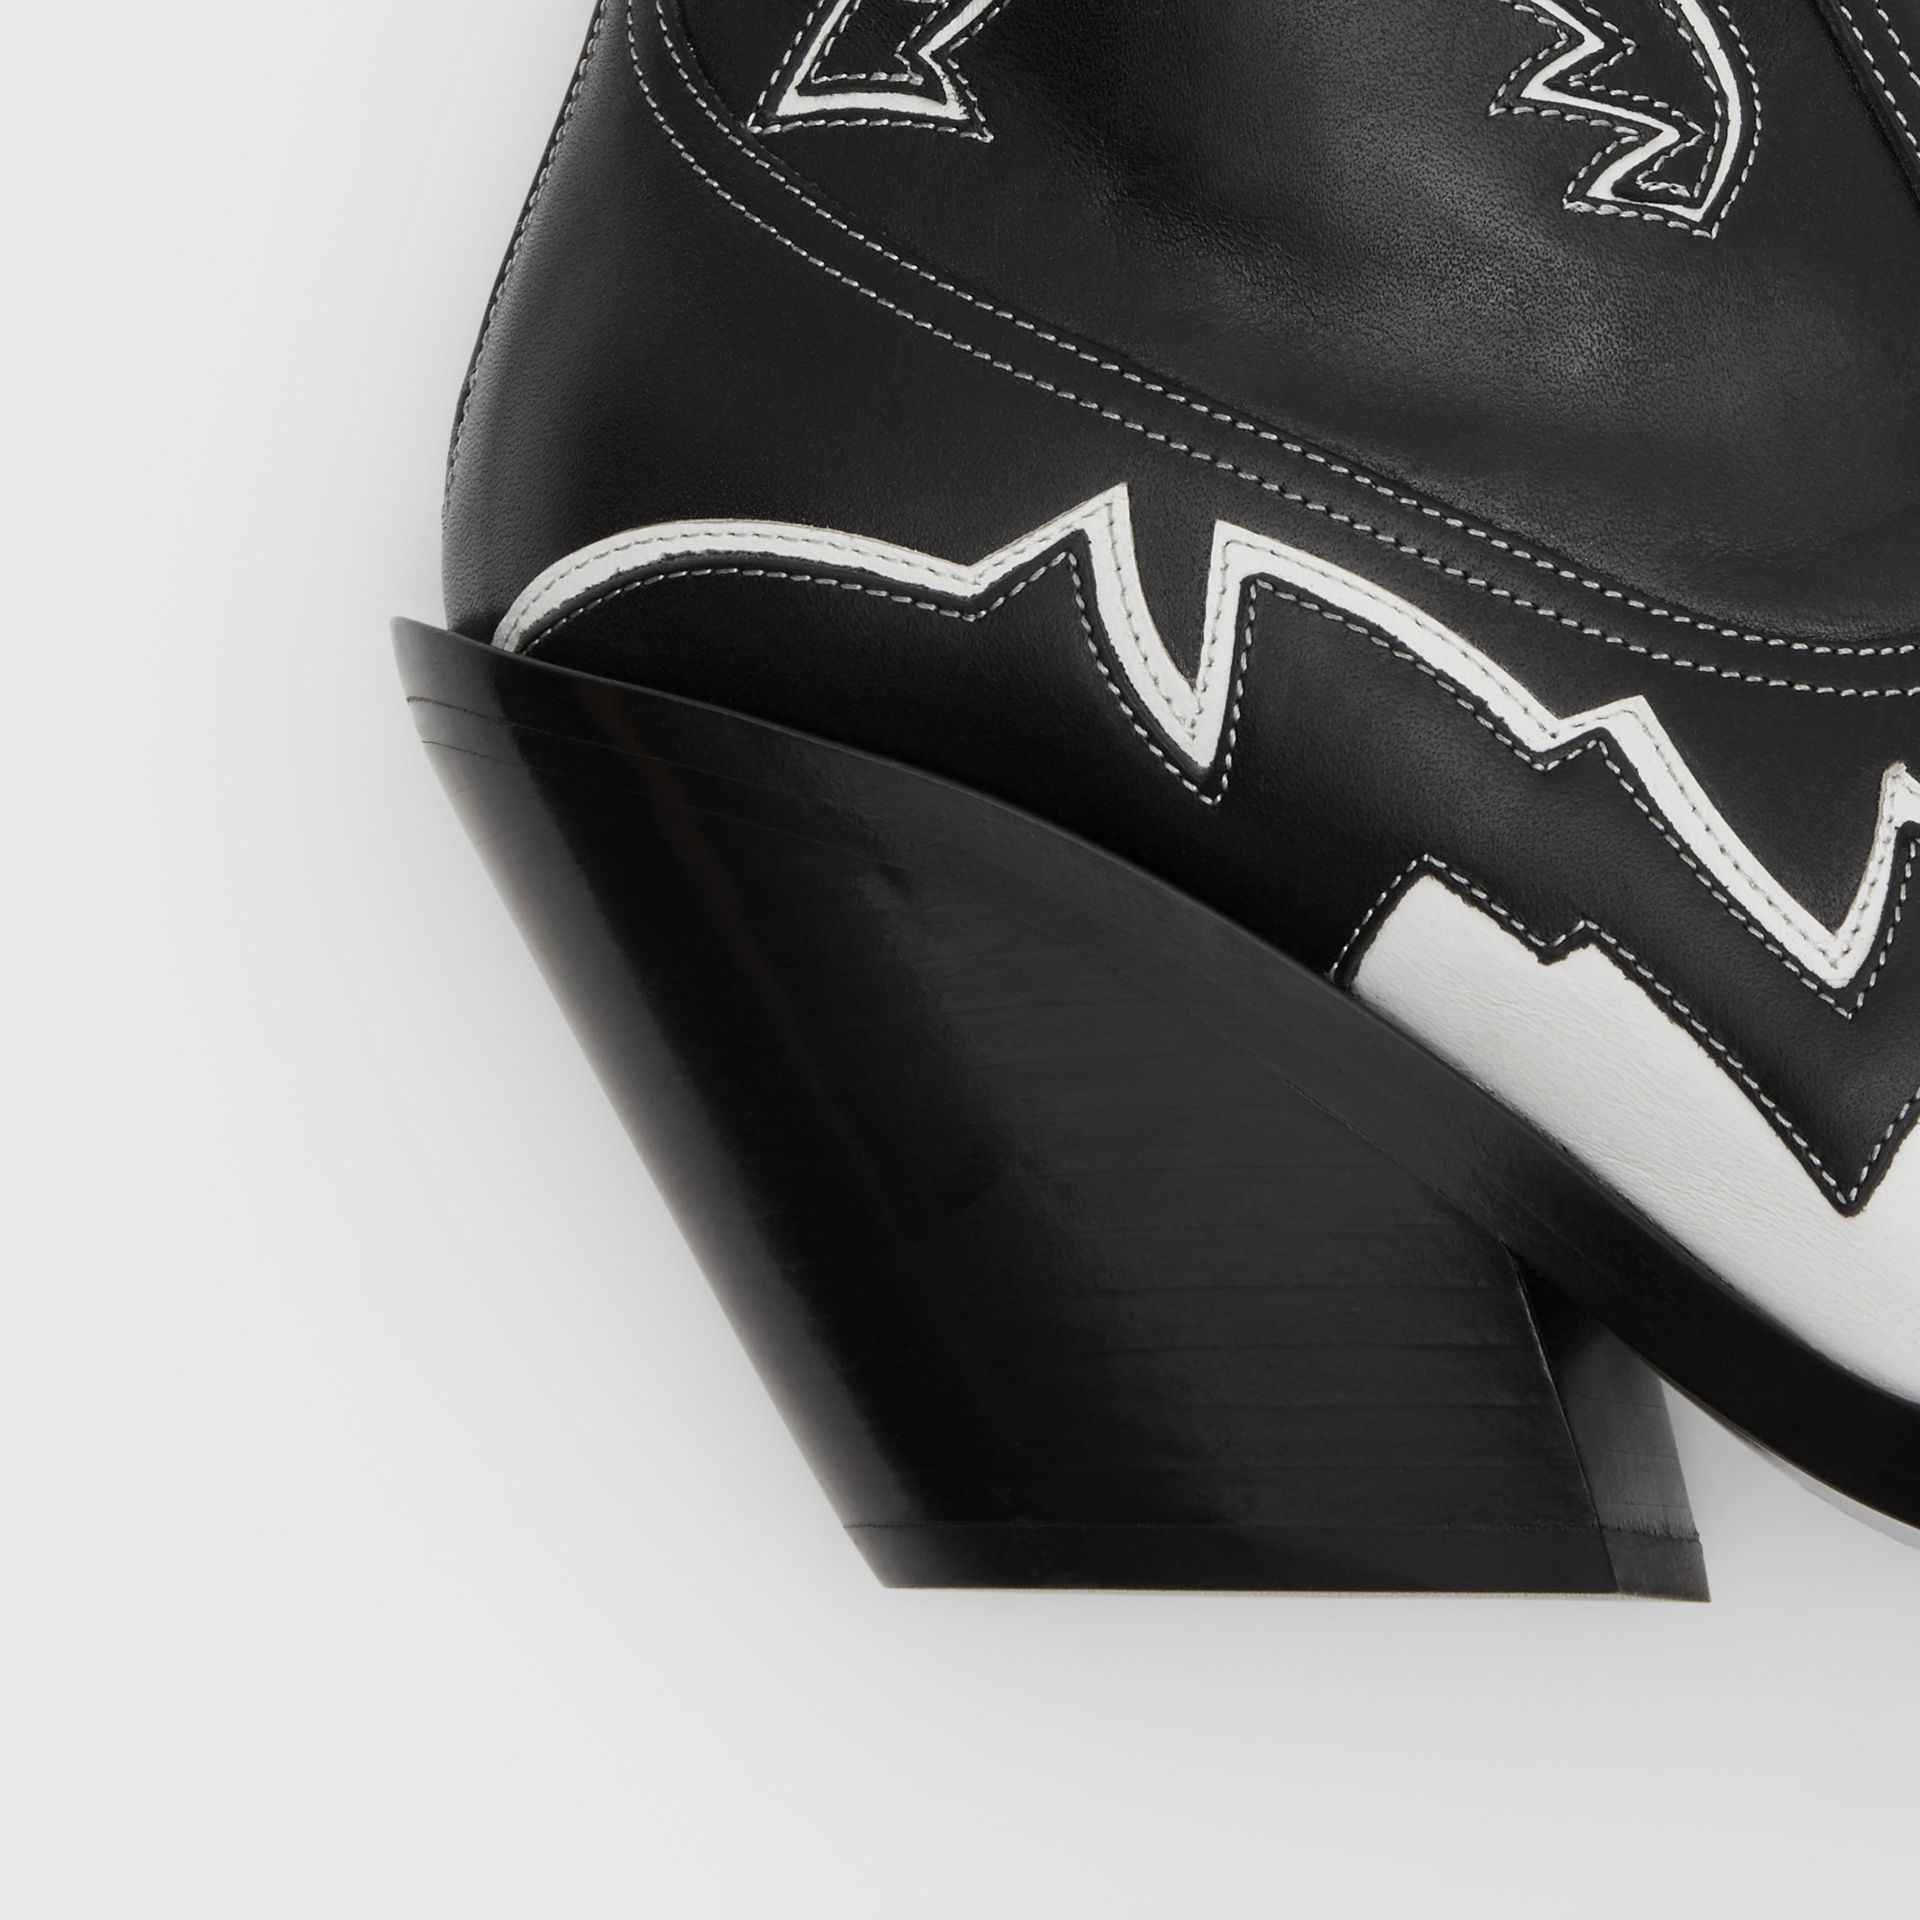 Topstitch Appliqué Leather Boots in Black/white - Women | Burberry United Kingdom - gallery image 6